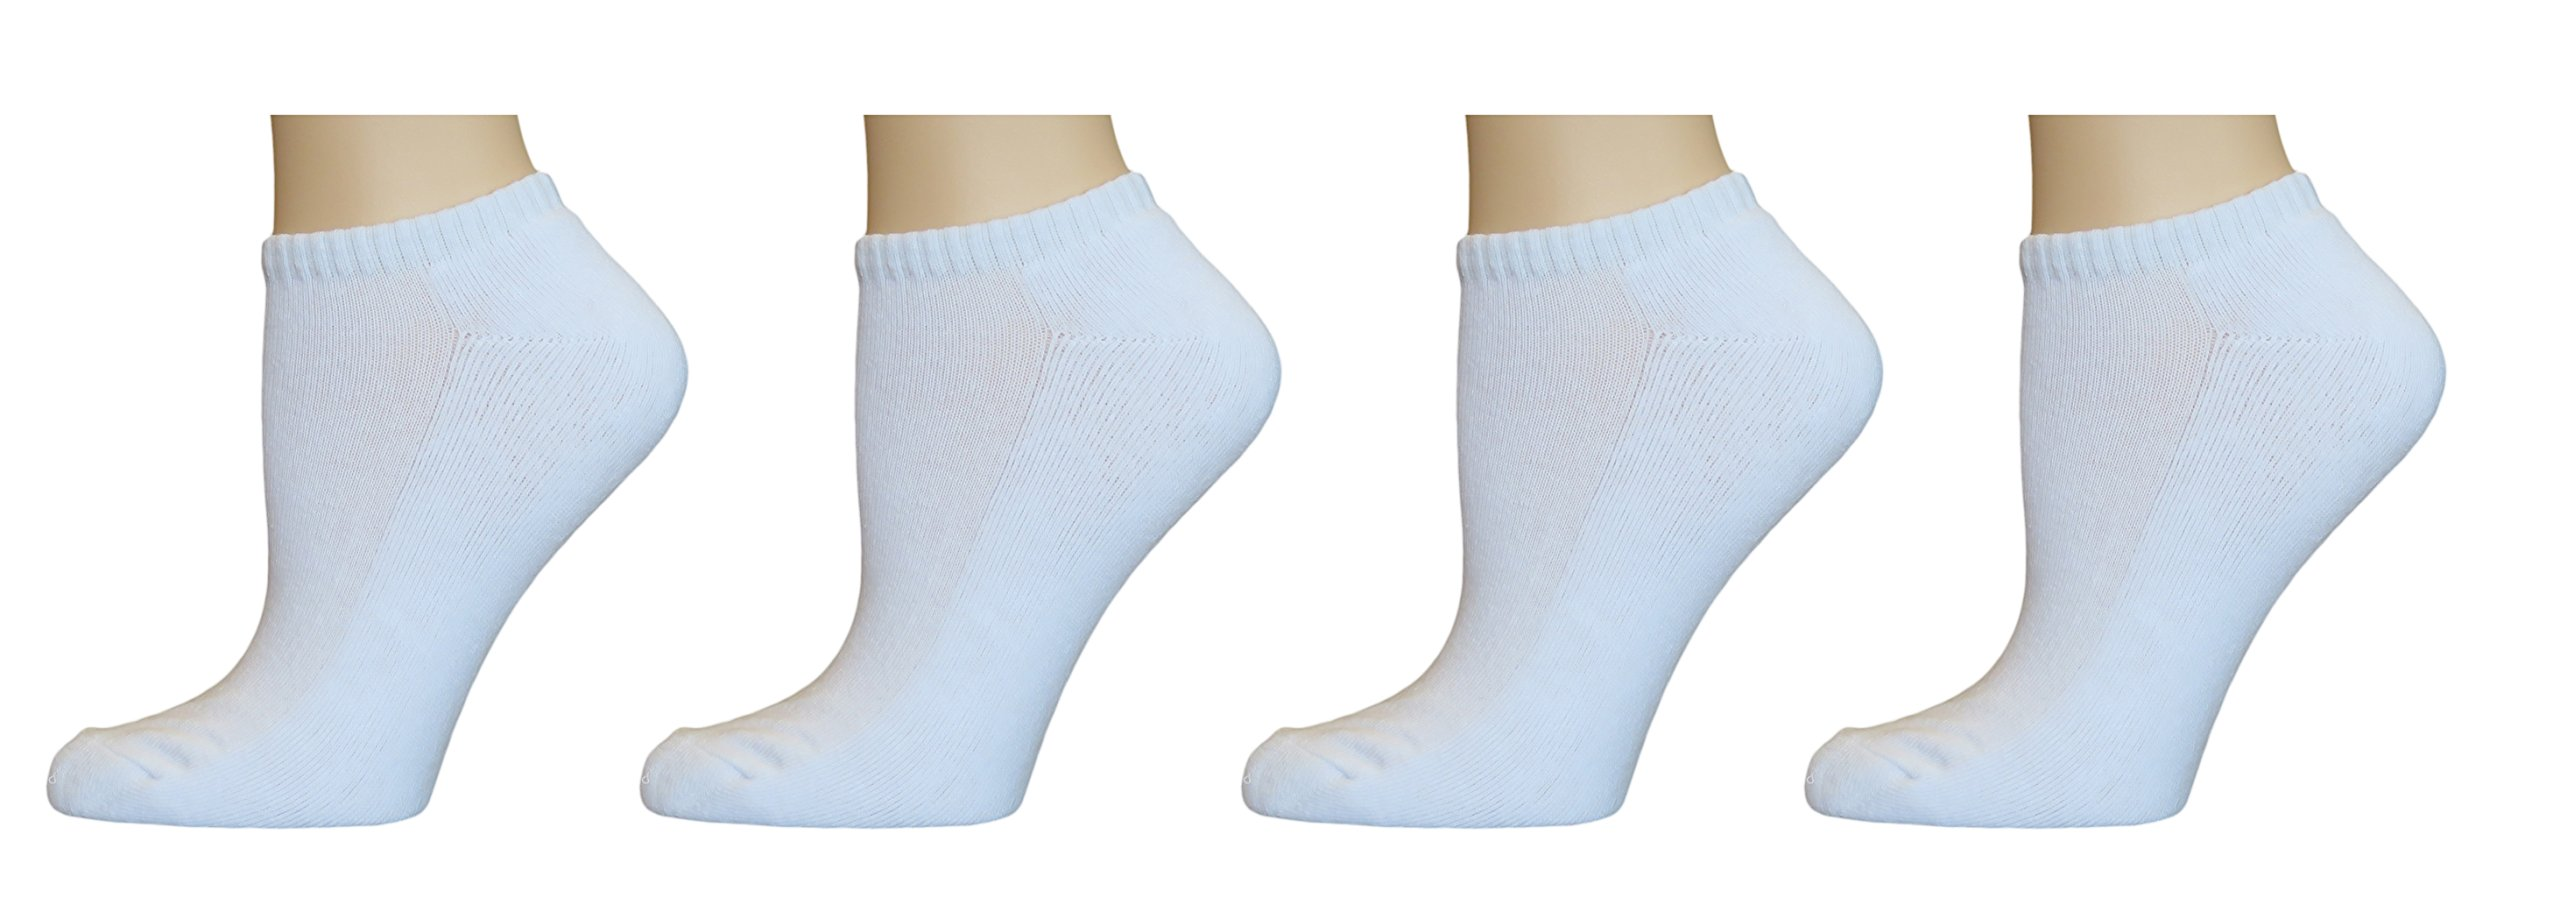 Top Step Women's No Show/Low Cut Performance Athletic Socks with Cushion Sole - 12 Pair by TOP STEP (Image #3)